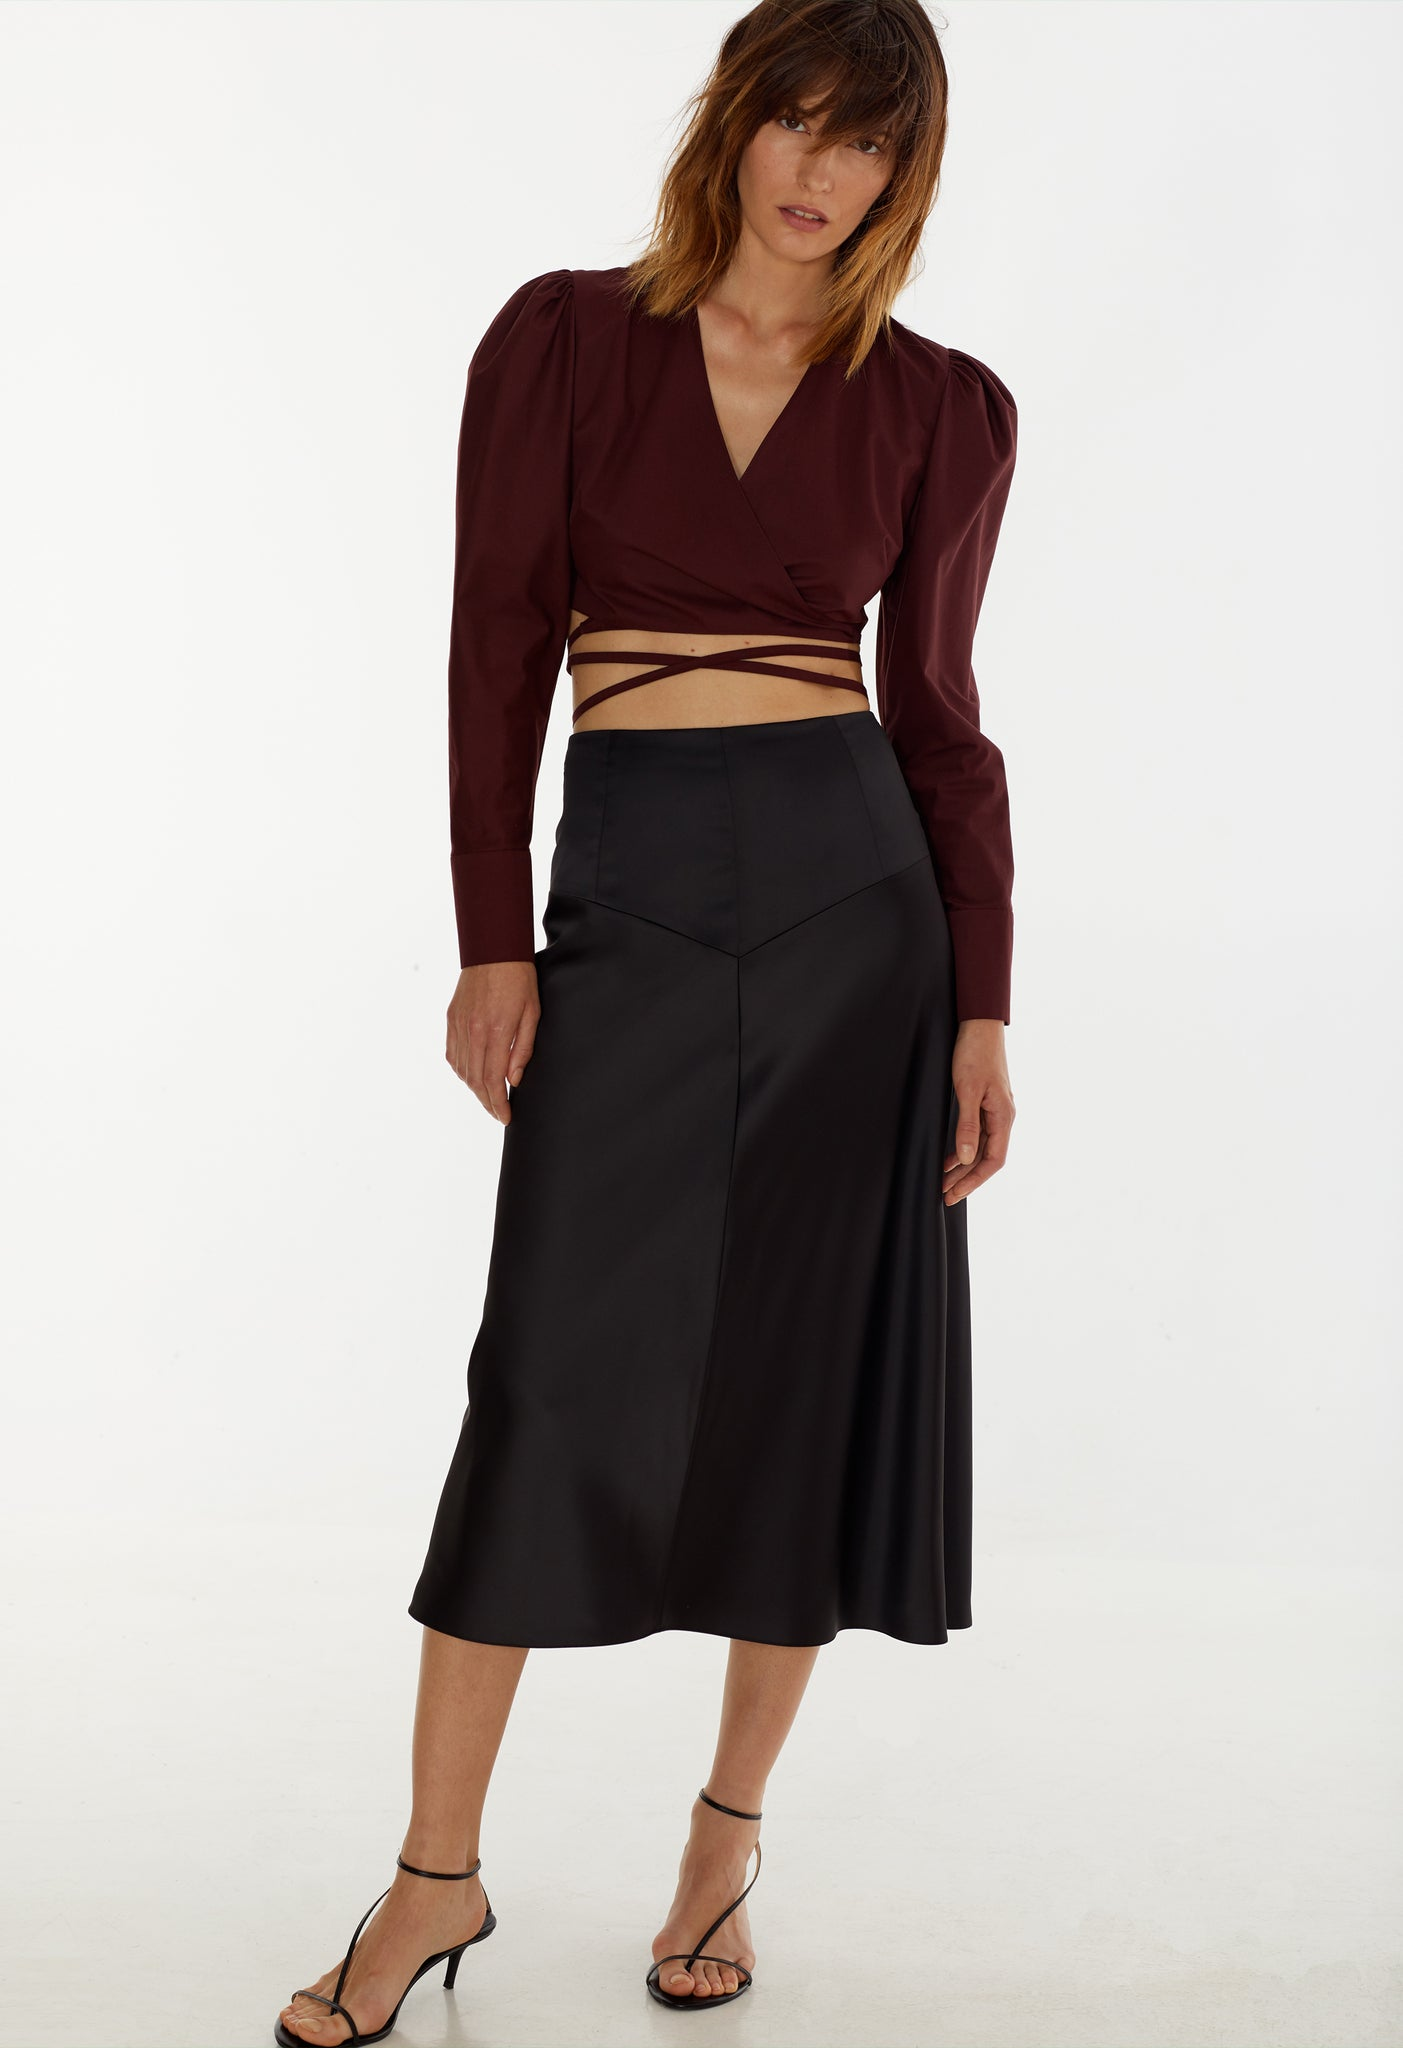 Model in 'Black coffee' skirt